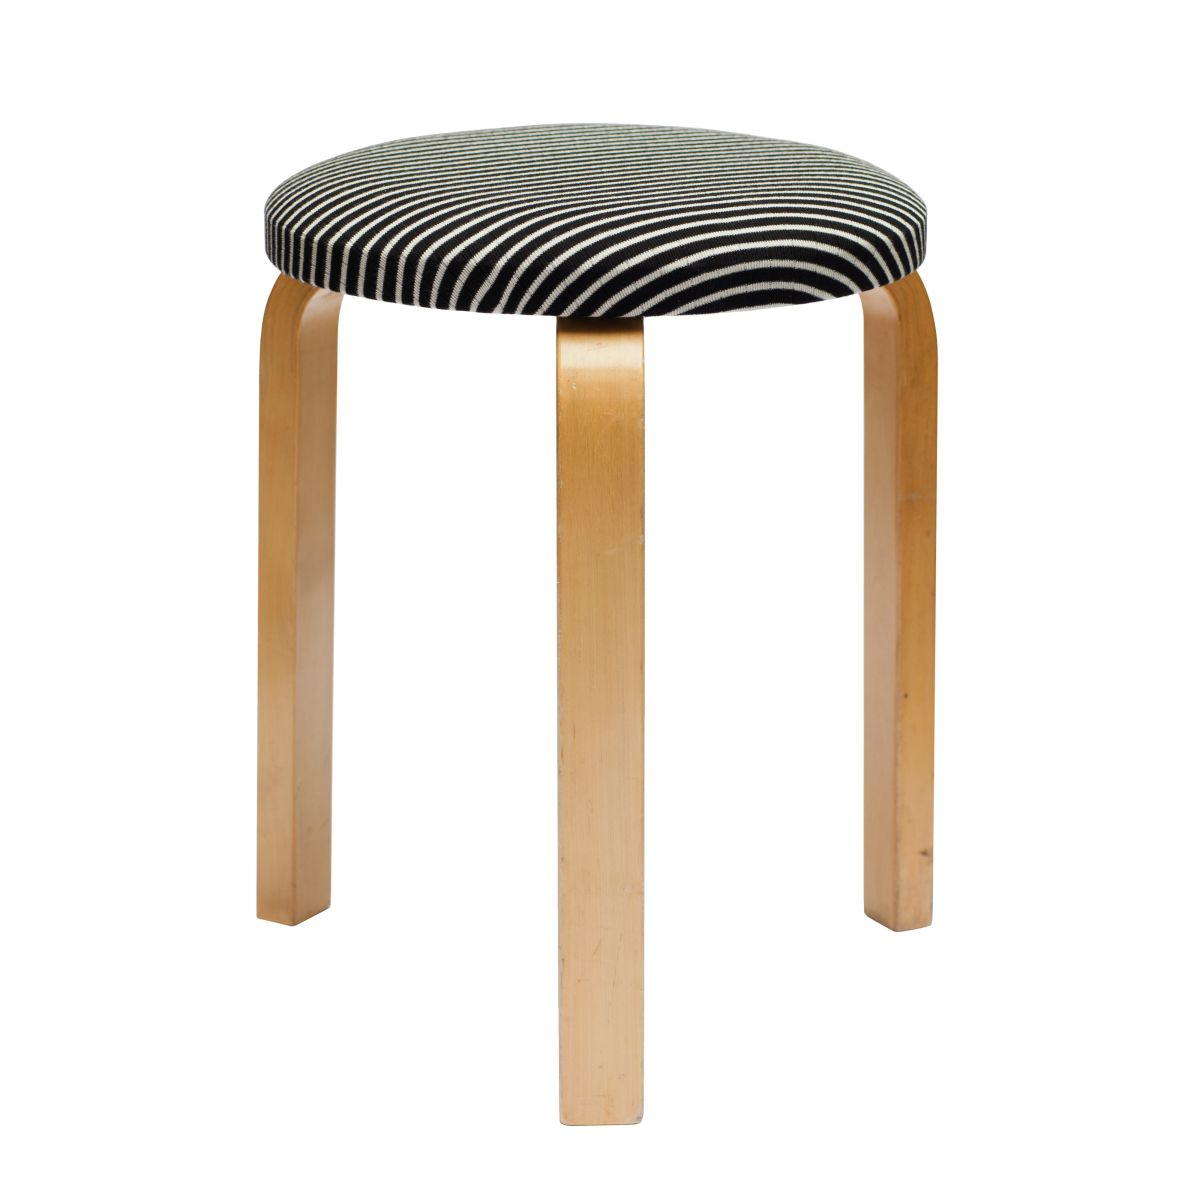 Stool-60-Mads-Norgaard-Upholstery